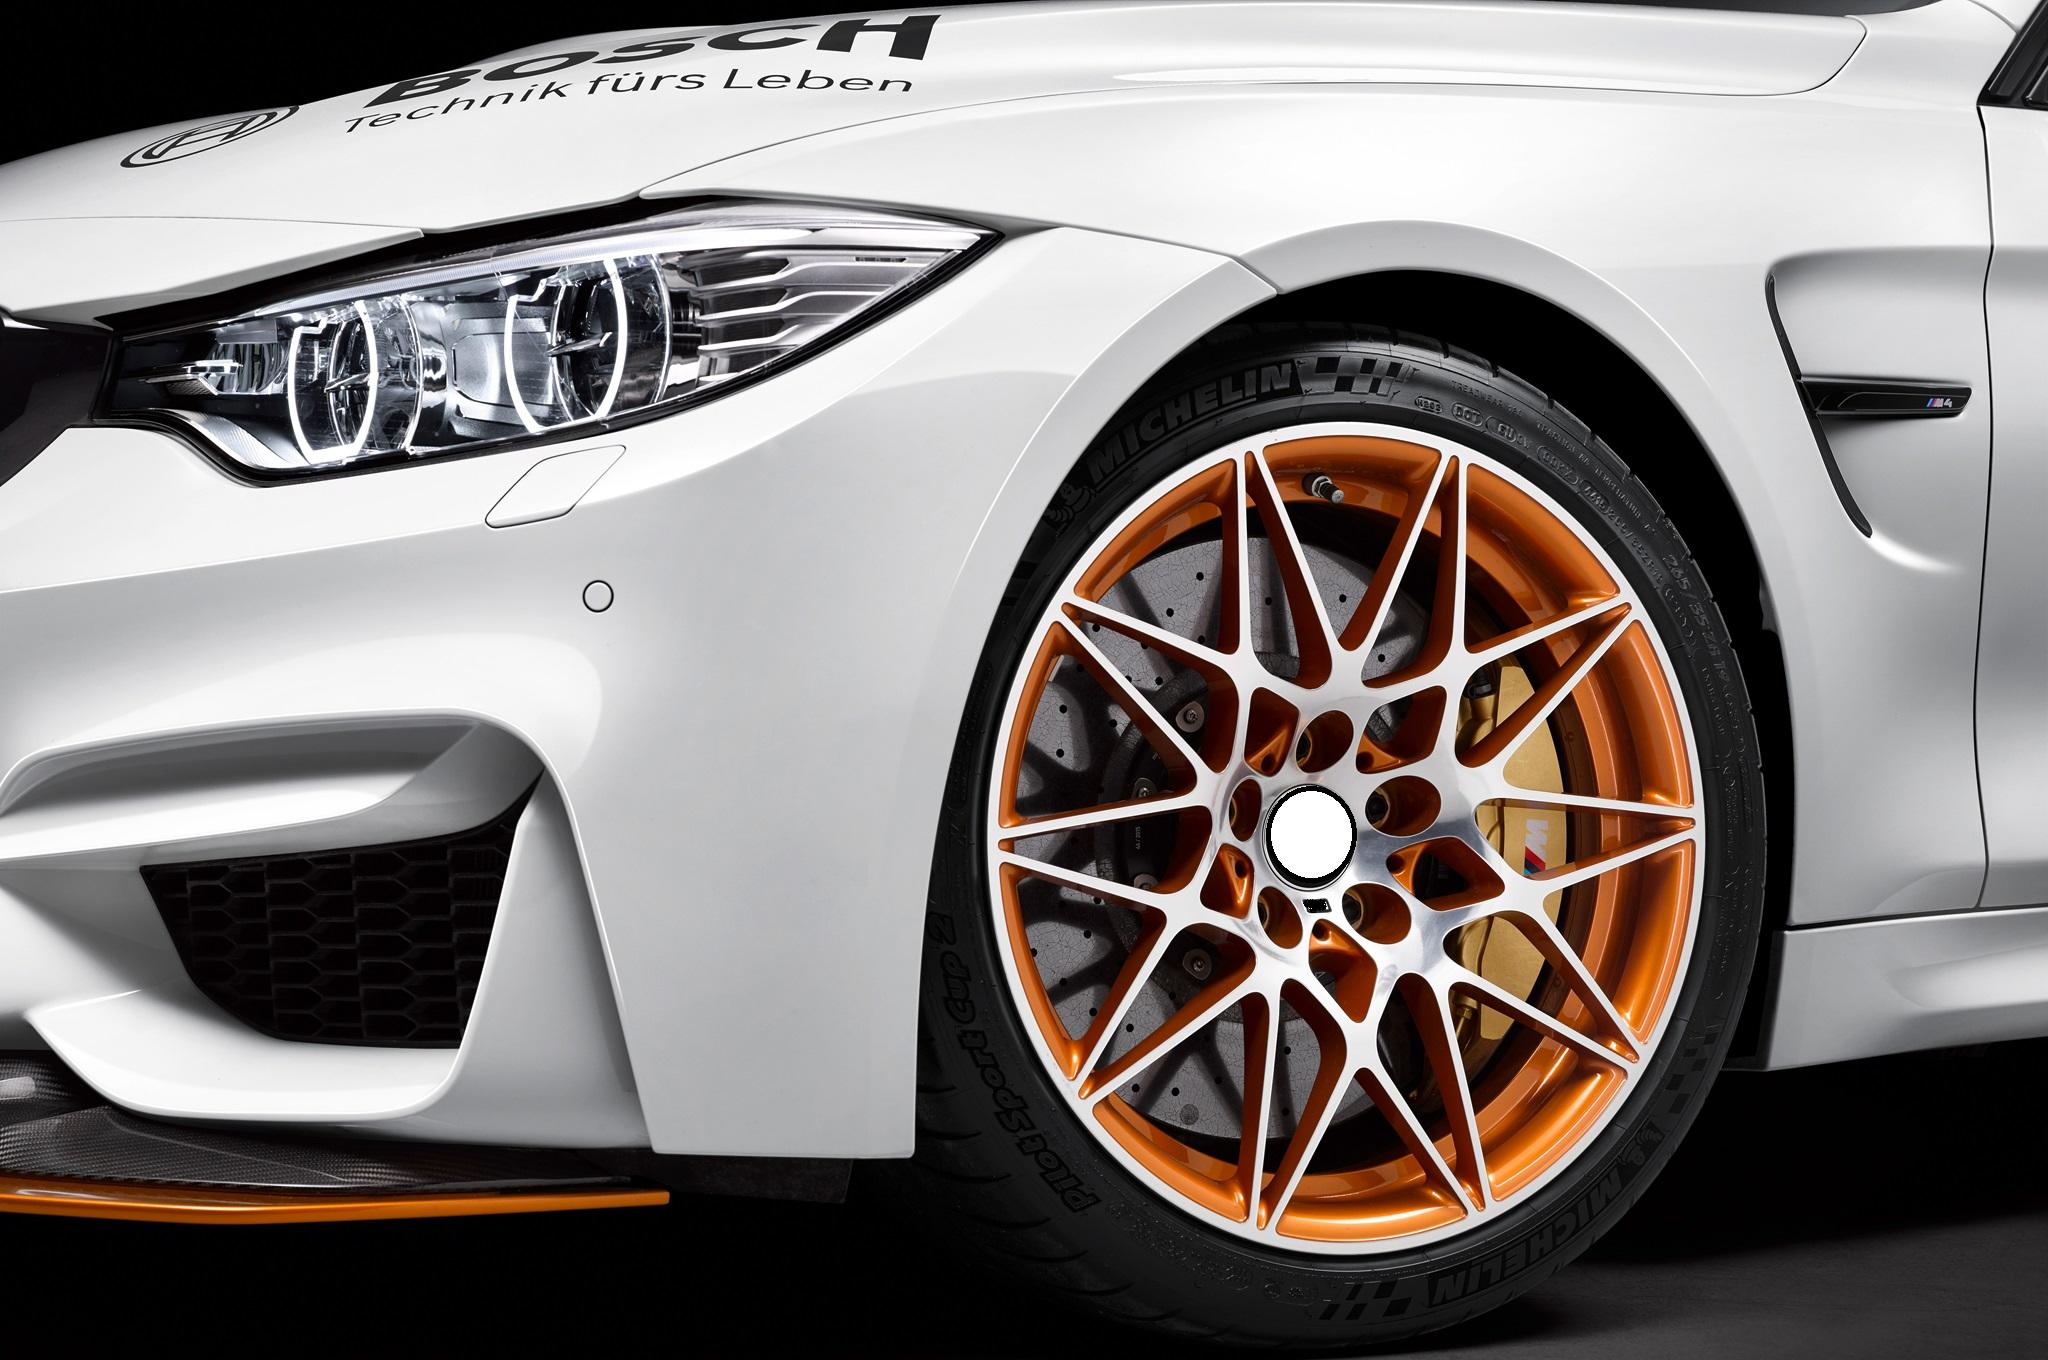 BMW-M4-GTS-DTM-Safety-Car-wheels